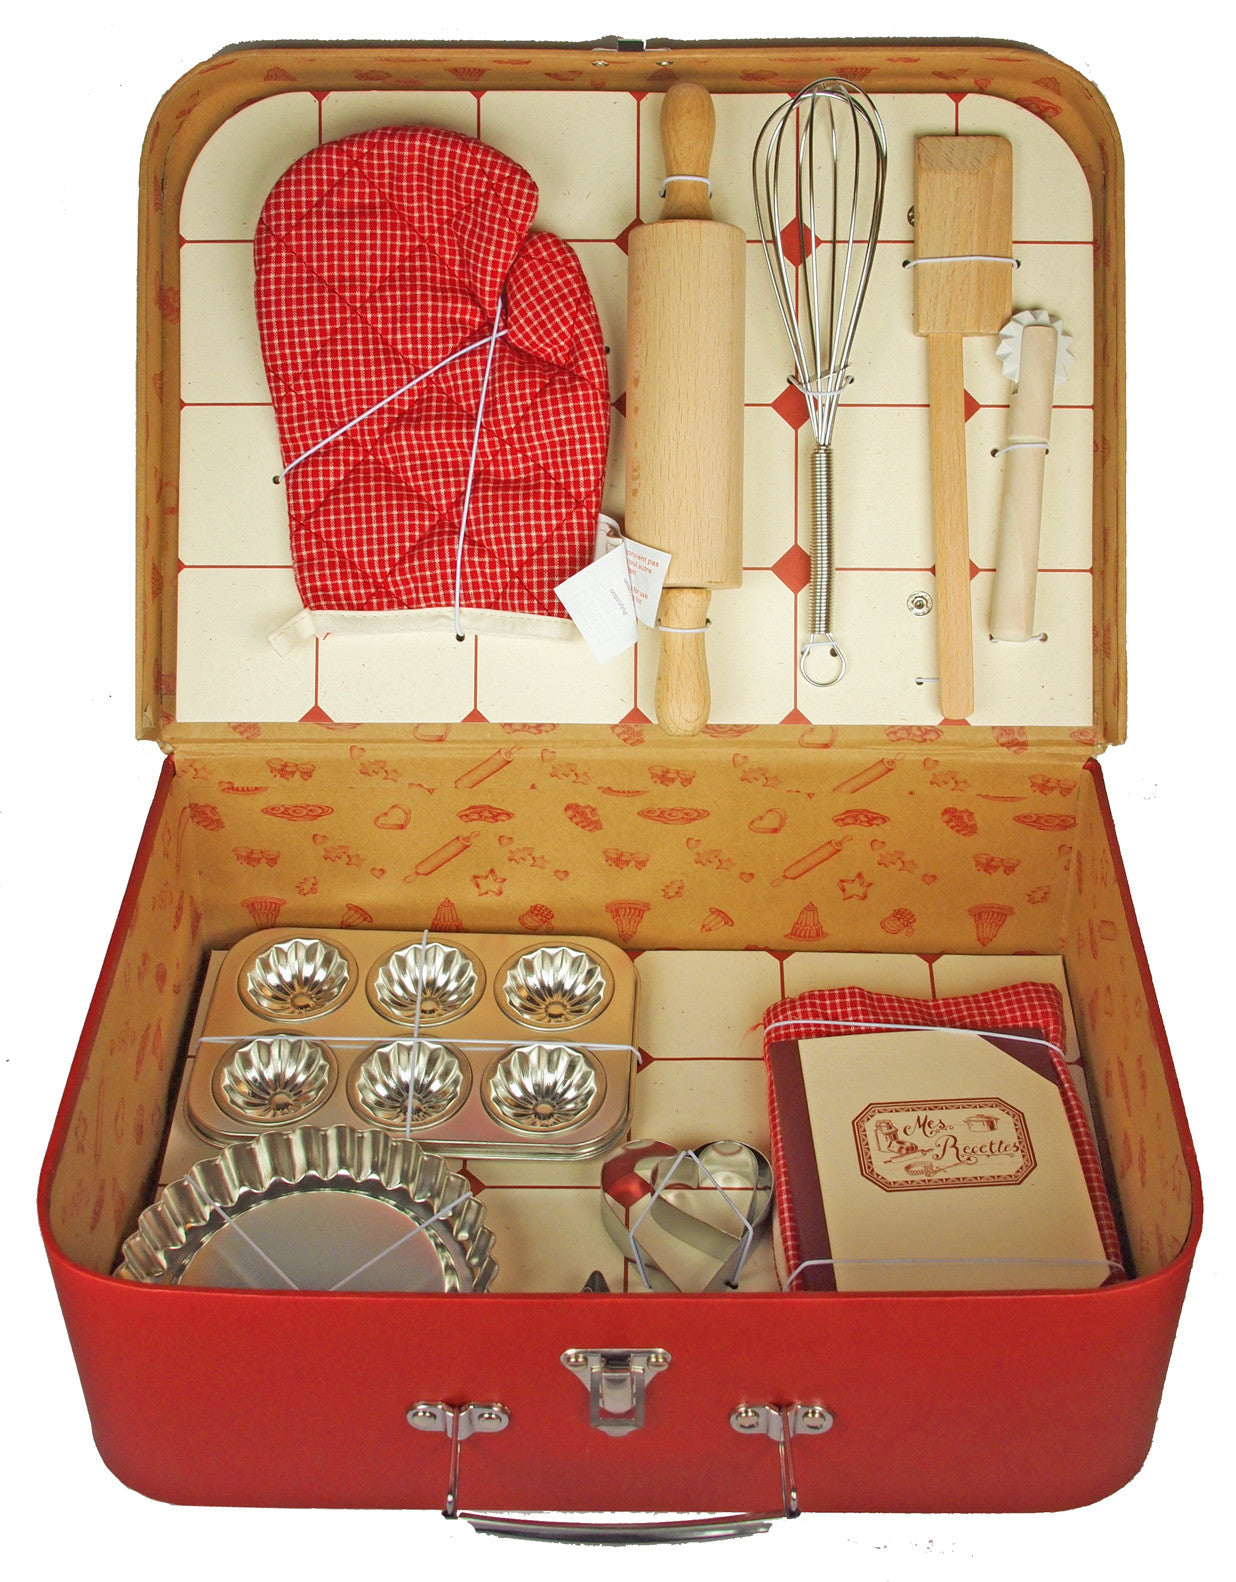 Patisserie (Baking Set)